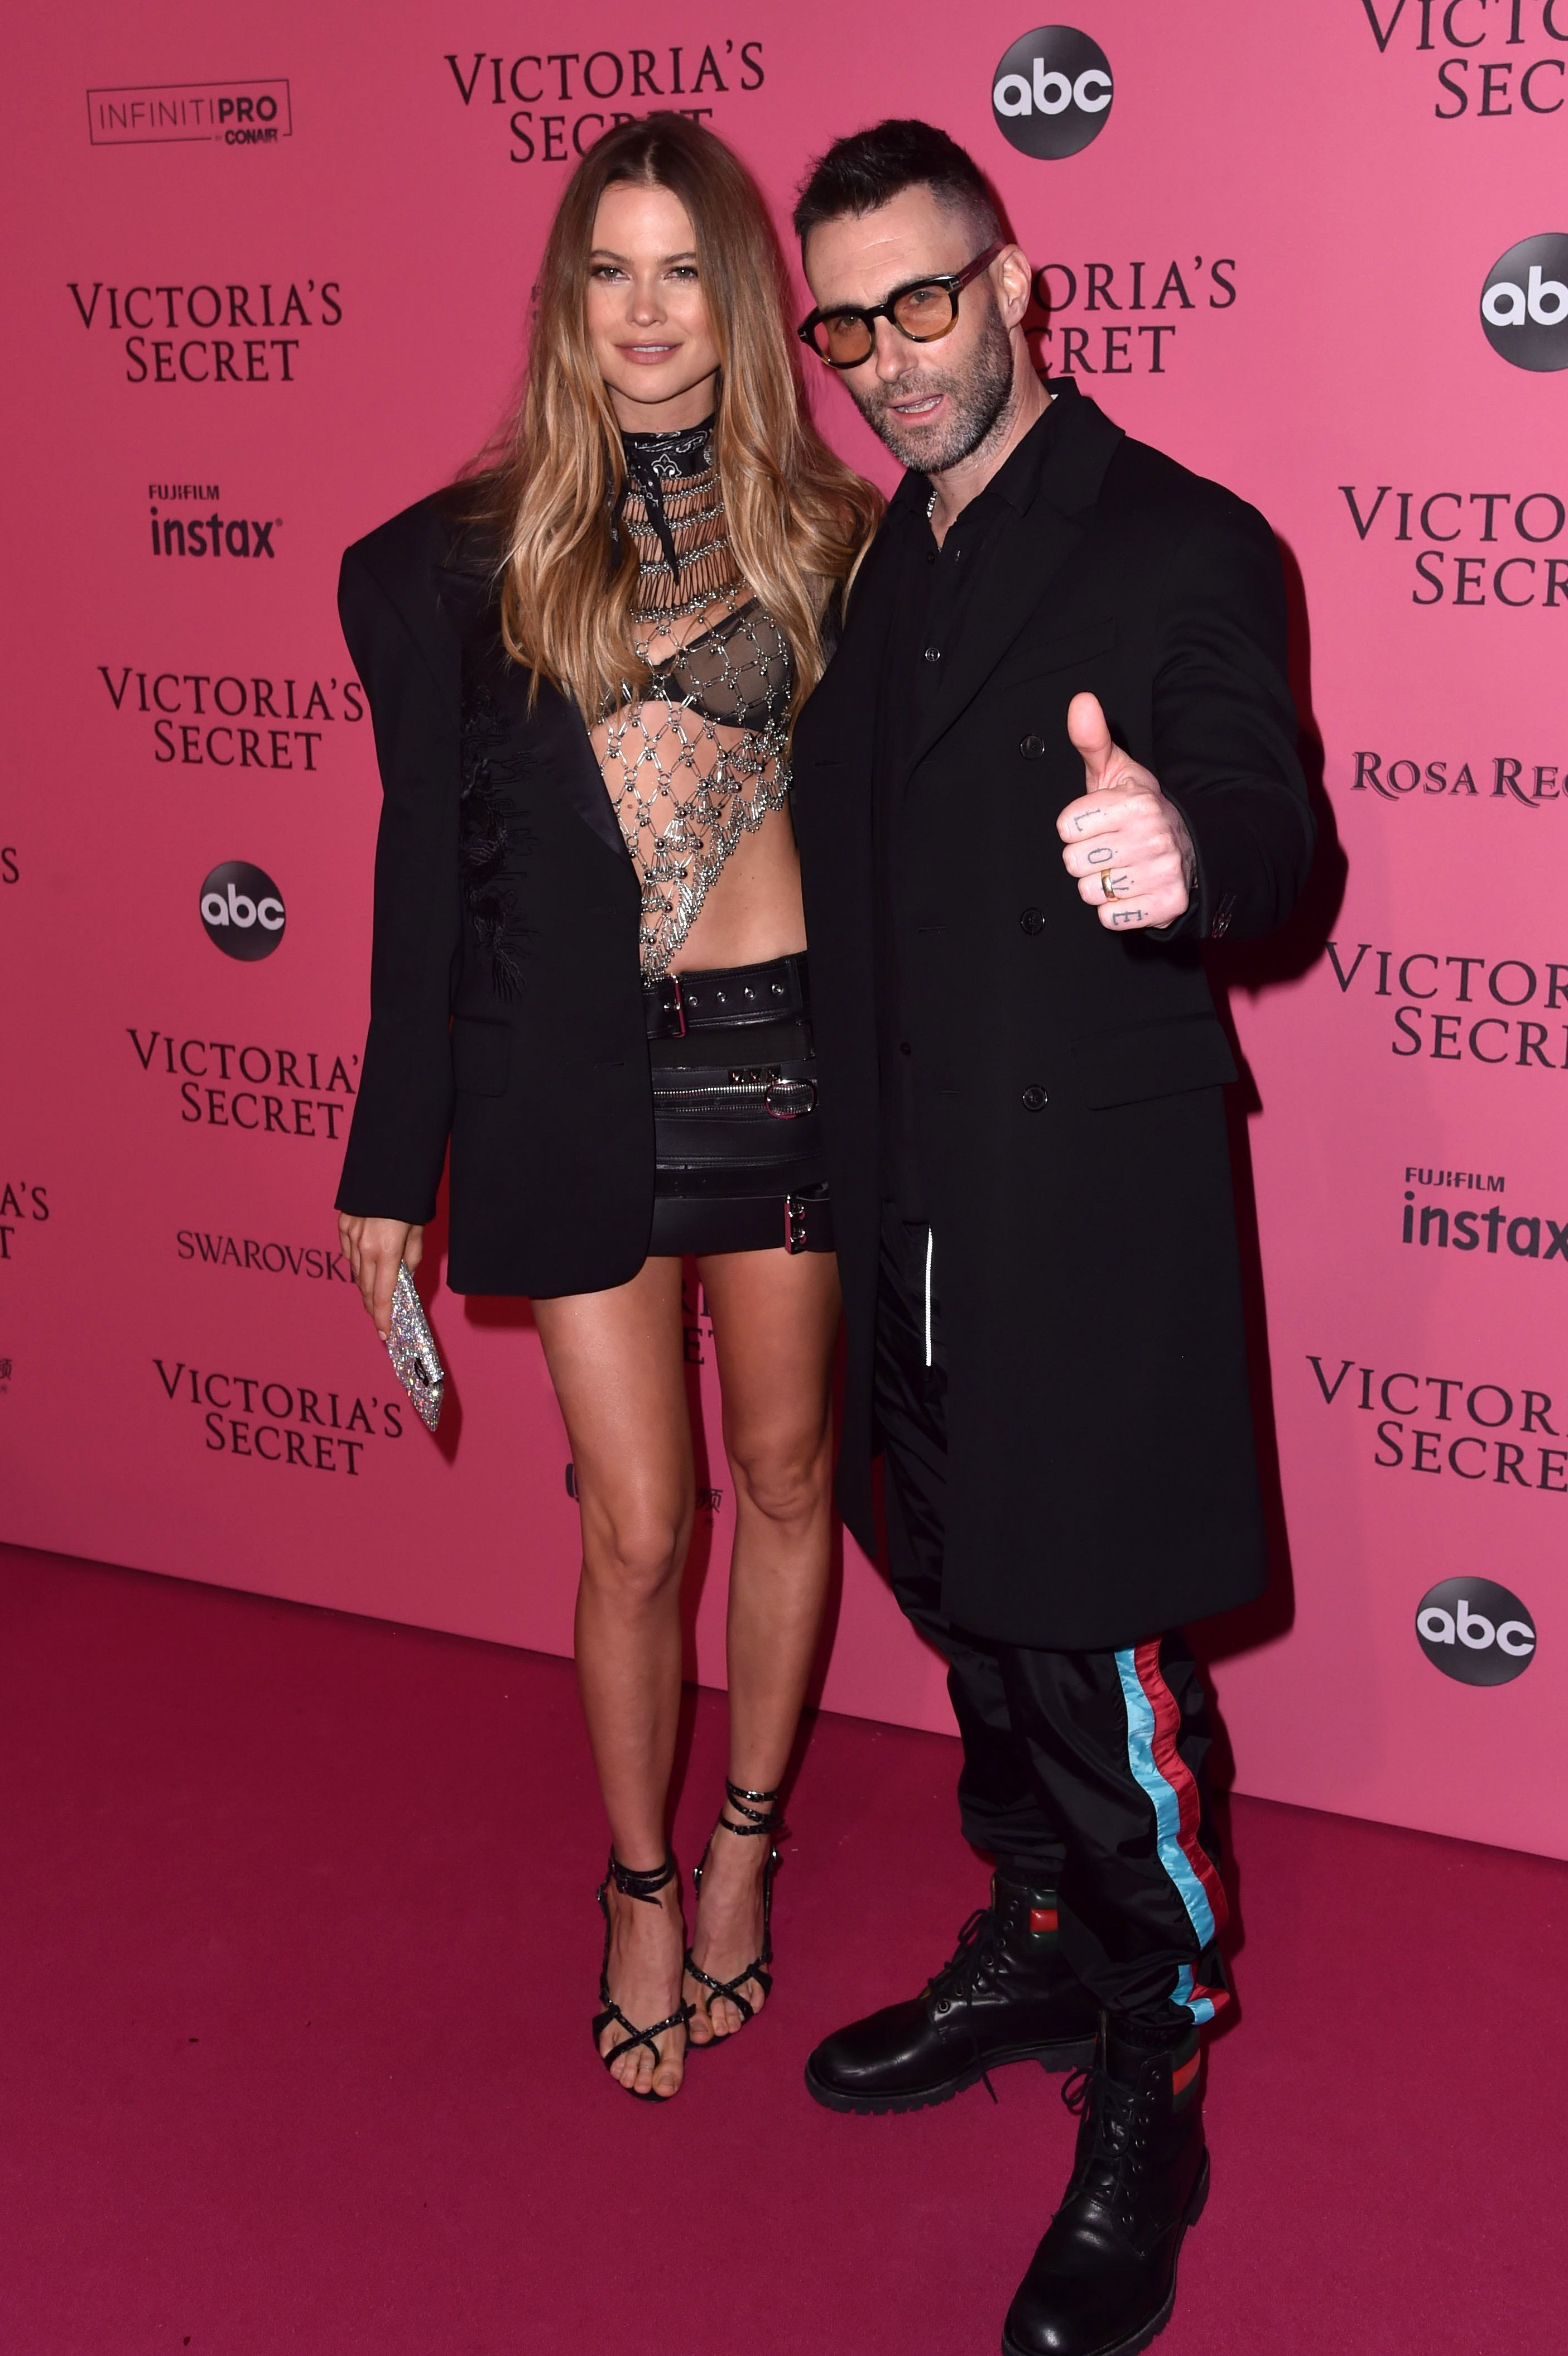 Behati Prinsloo and Adam Levine attend the Victoria's Secret Fashion Show After Party in New York City on Nov. 8, 2018.